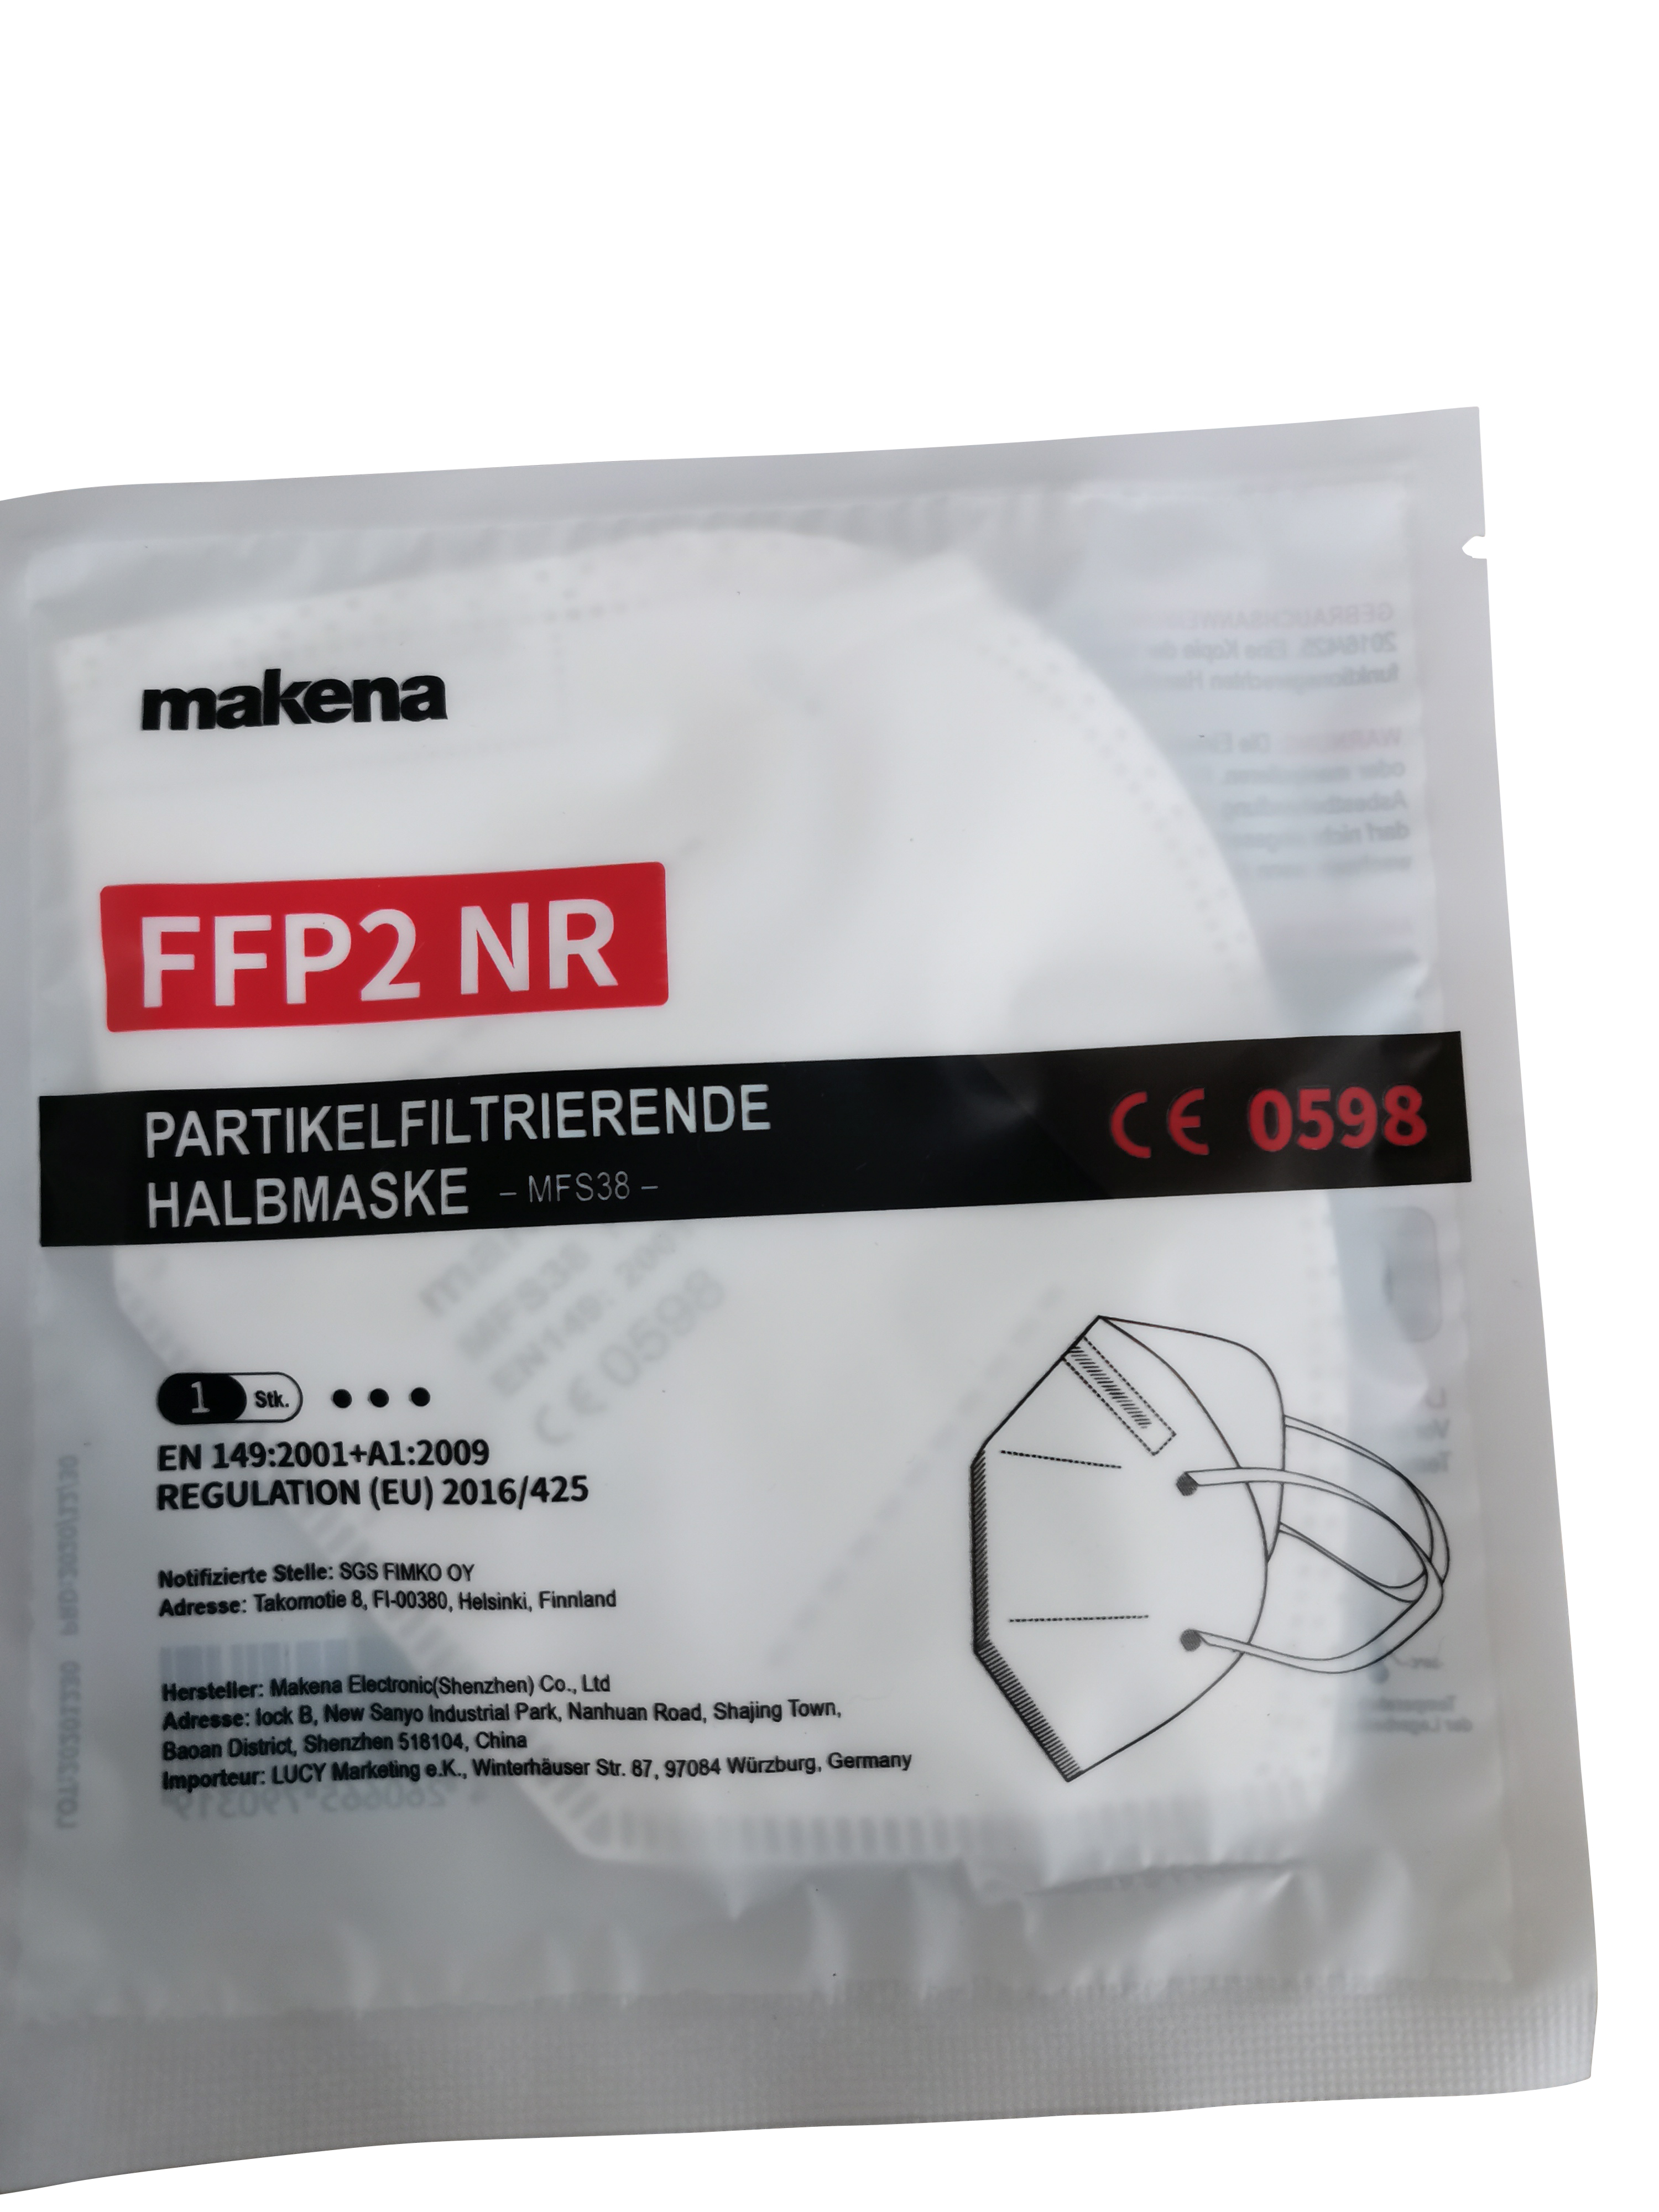 40049 - Certified FFP2 protective masks CE 0598 available immediately Europe